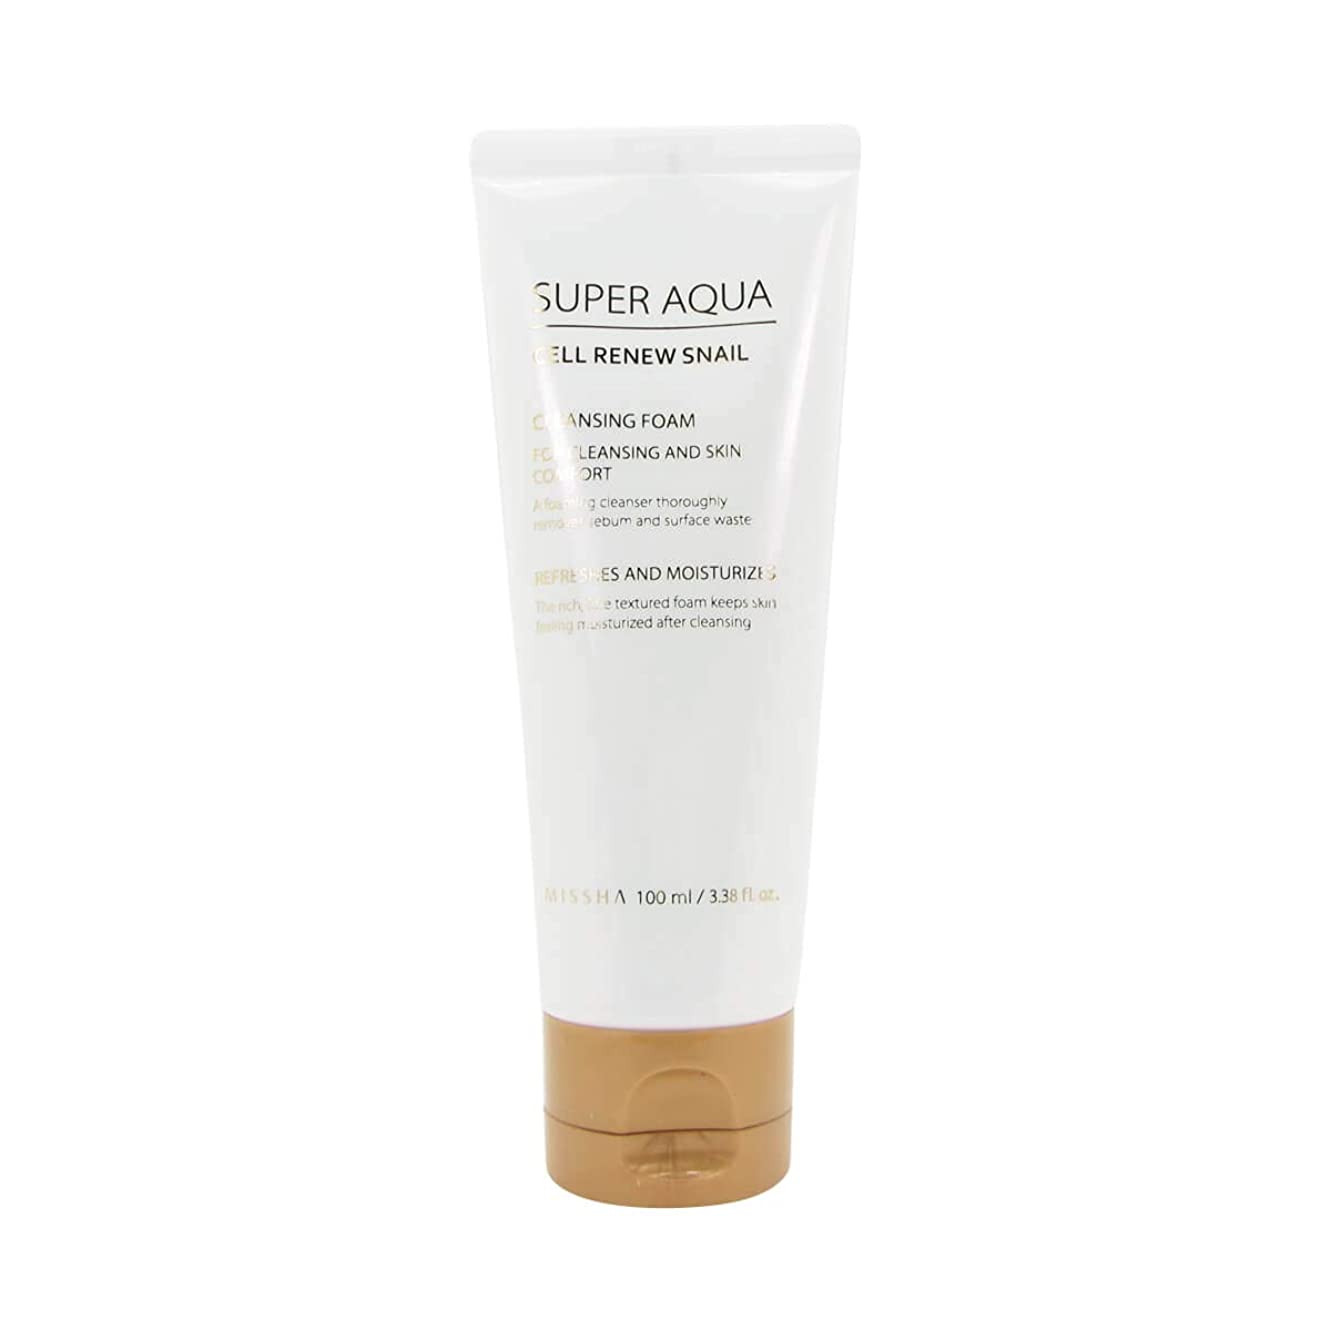 エンジニアリング王子家事をするMissha Super Aqua Cell Renew Snail Cleansing Foam 100ml